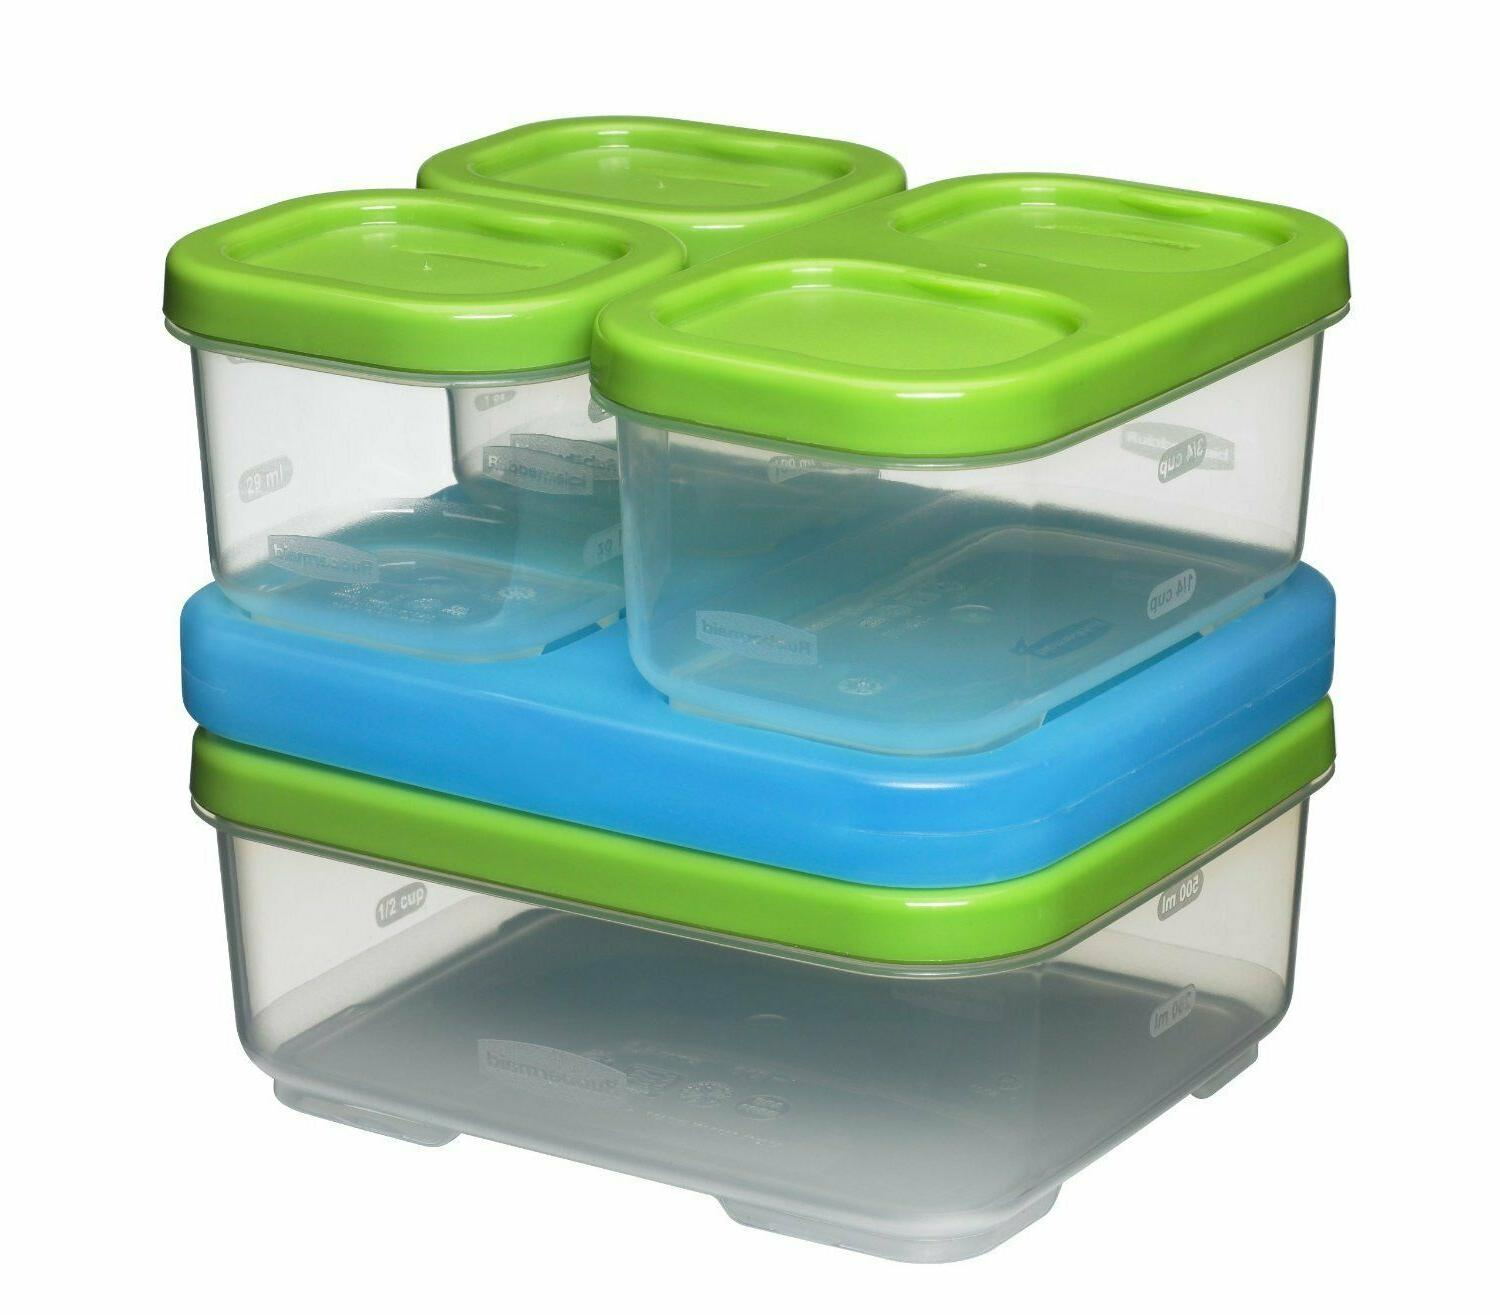 Rubbermaid Sandwich Durable Lunch Box Containers BPA Free